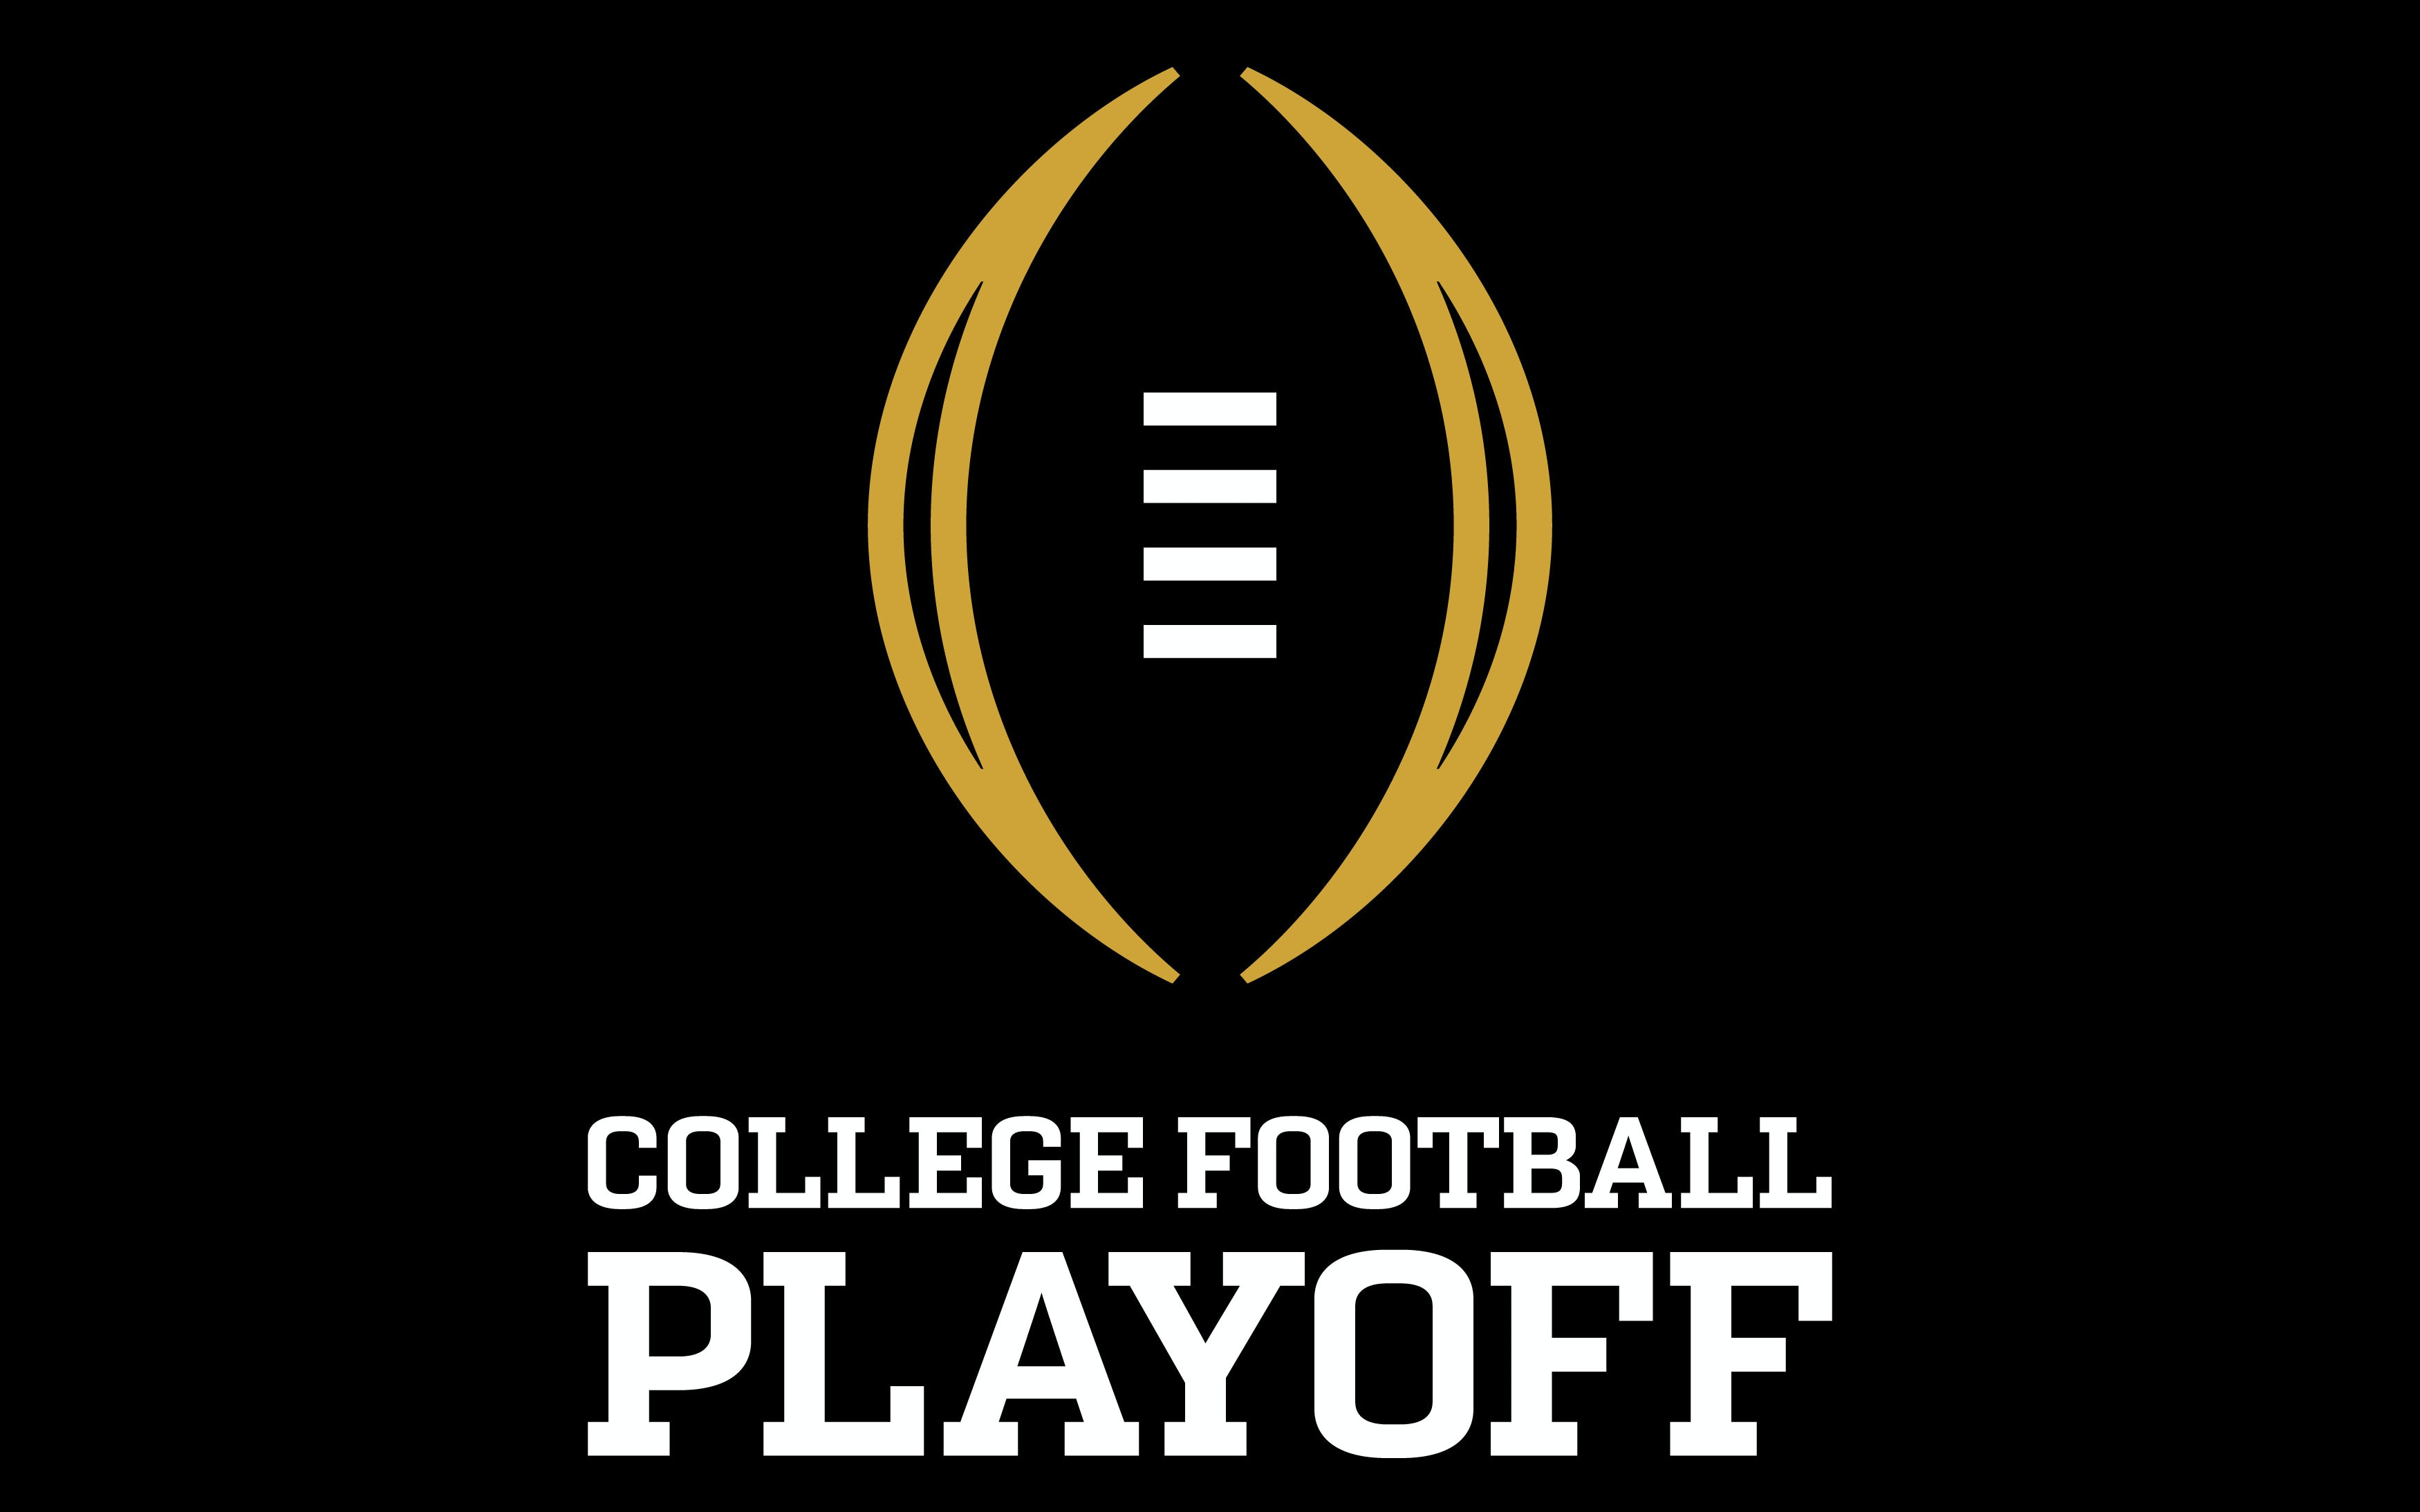 College Football Playoff Pentagram